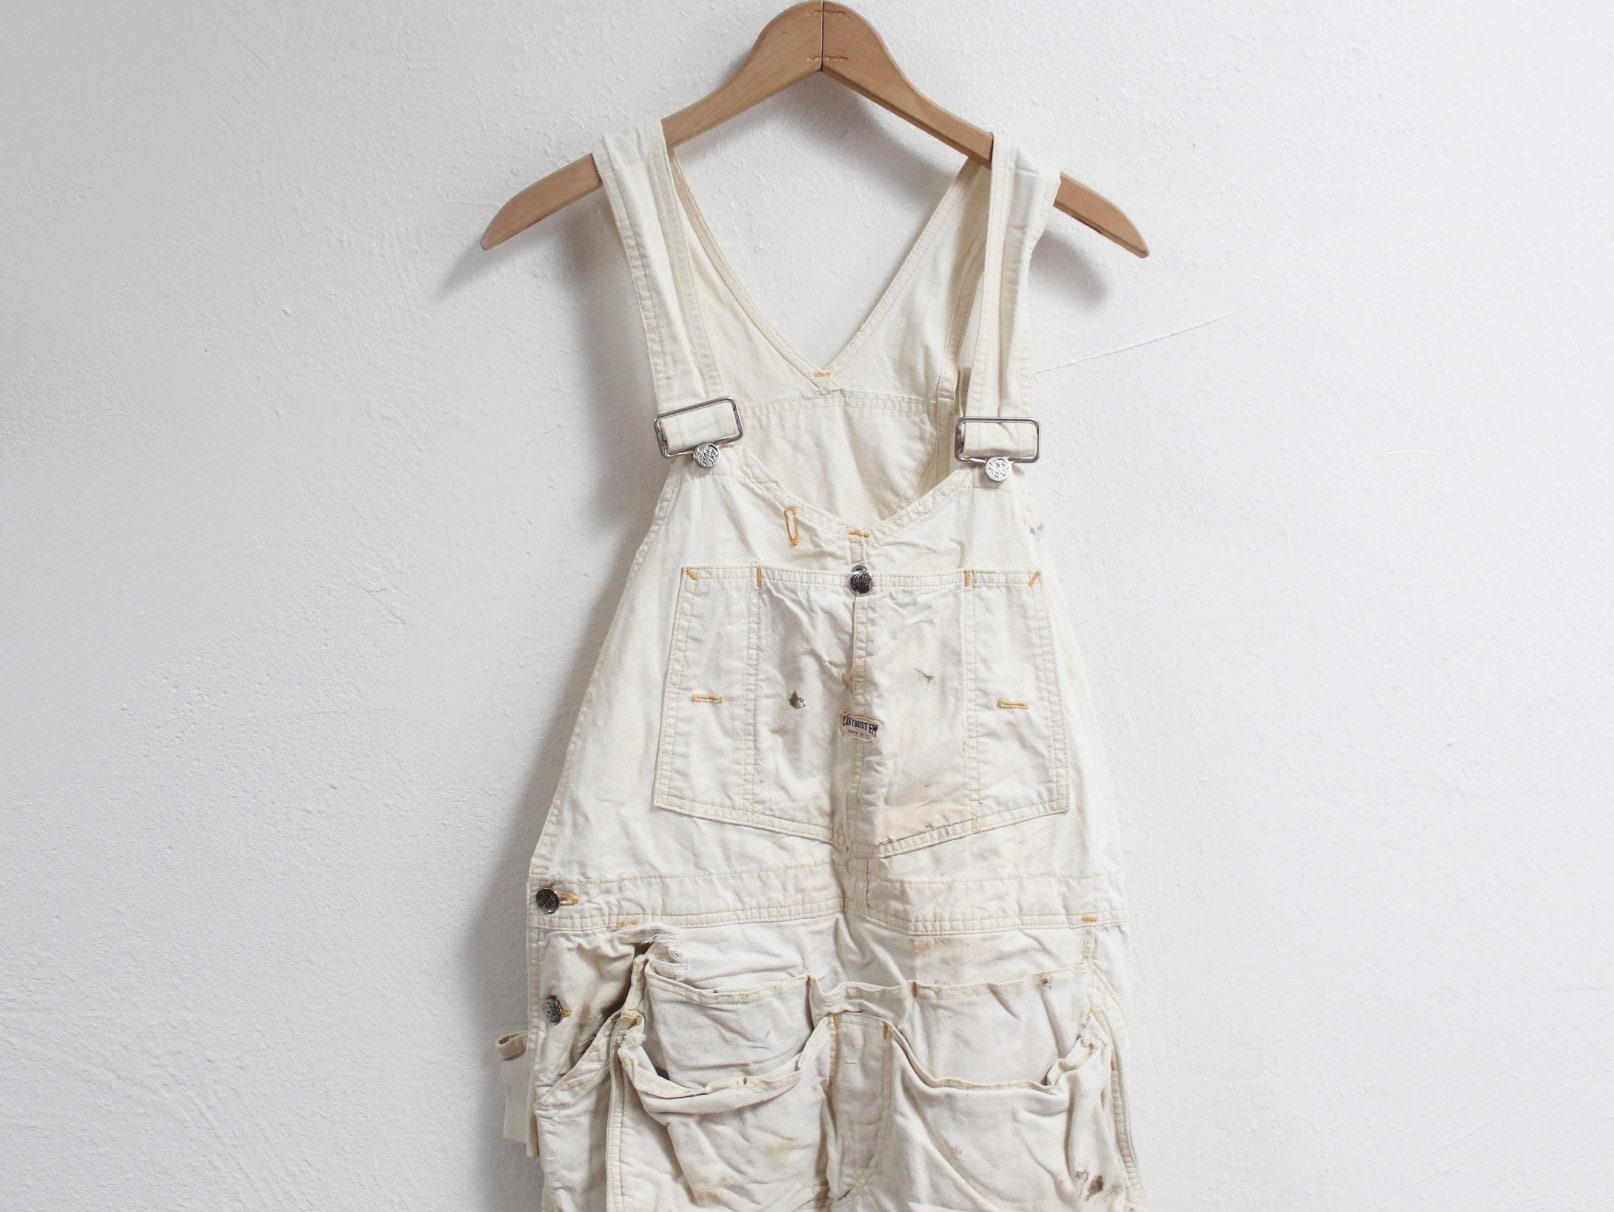 1940s Mens Ties | Wide Ties & Painted Ties 40x28 Vintage 1940S Cant Bust Em Gold Label Union White Painter Overalls $40.00 AT vintagedancer.com